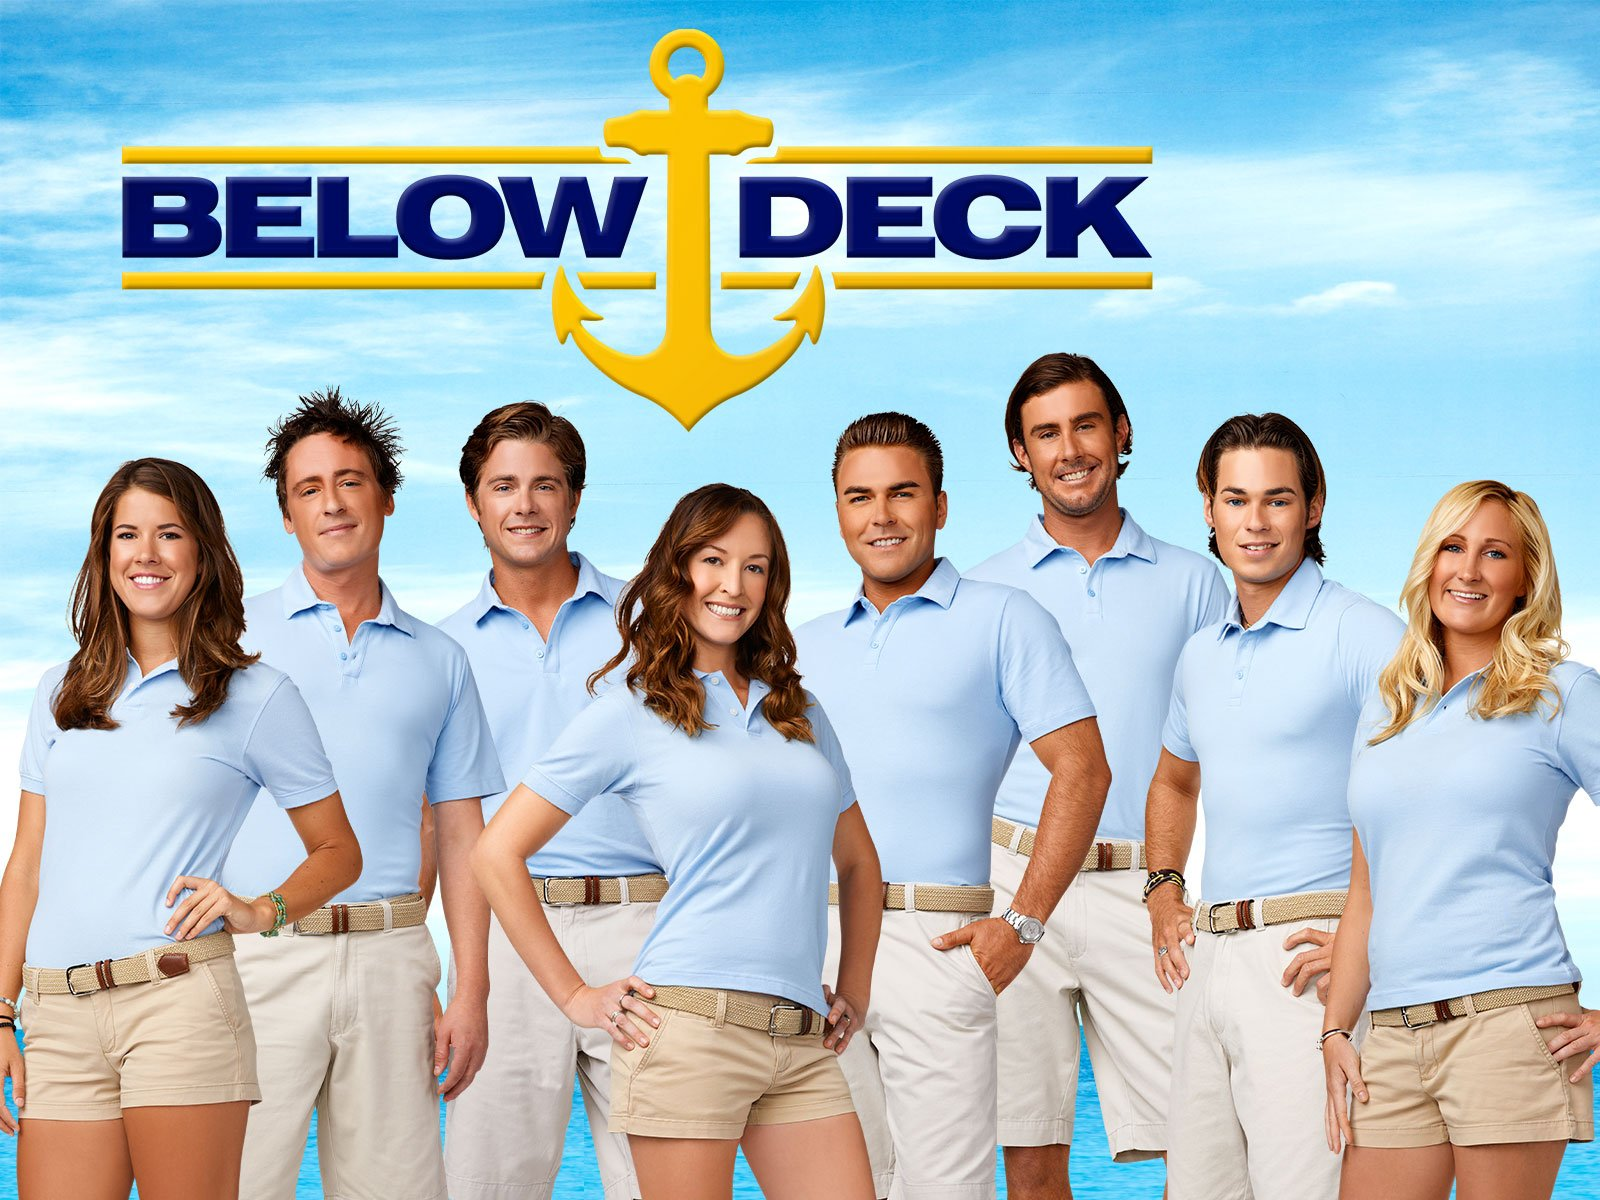 Below deck cast dating